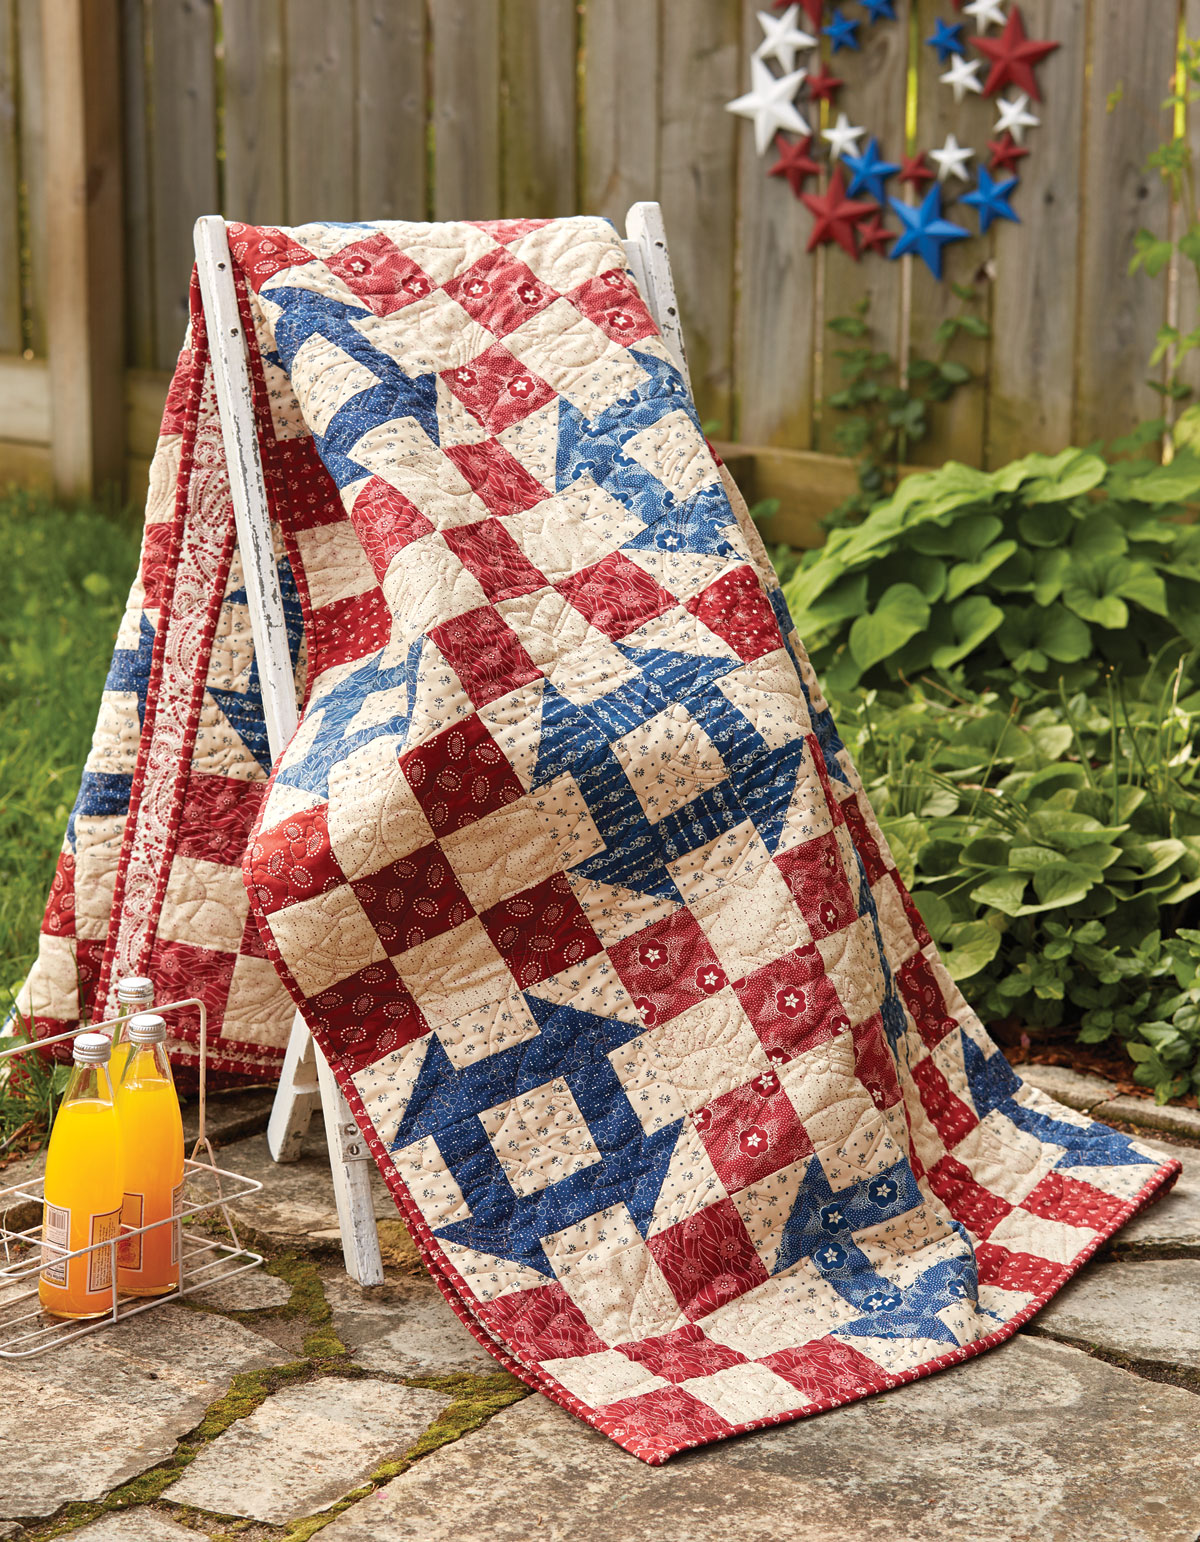 House Divided Quilt - Fons & Porter - The Quilting Company : house patterns for quilts - Adamdwight.com